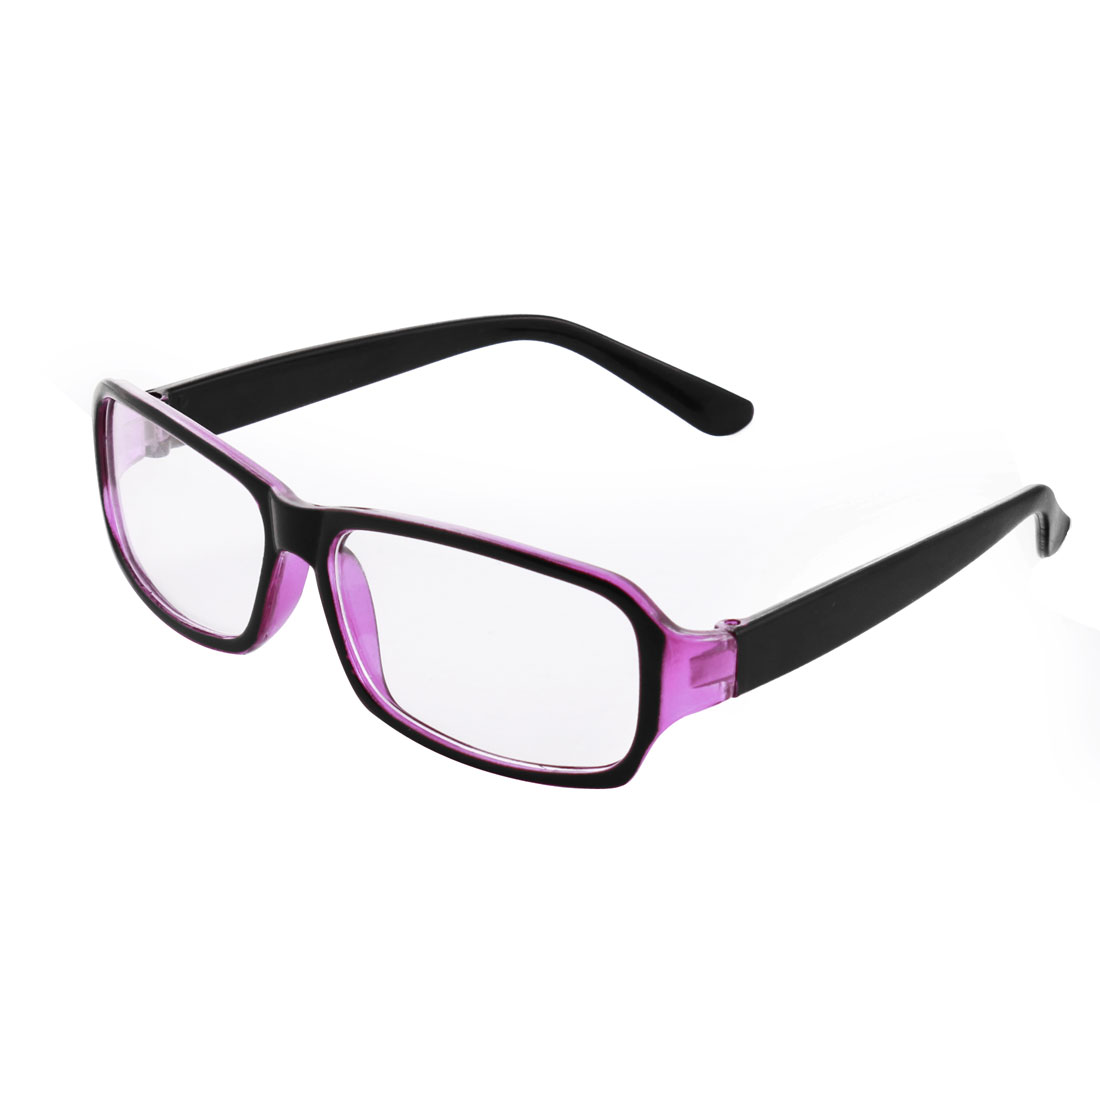 Lady Plastic Single Bridge Clear Lens Plano Glasses Spectacles Black Purple